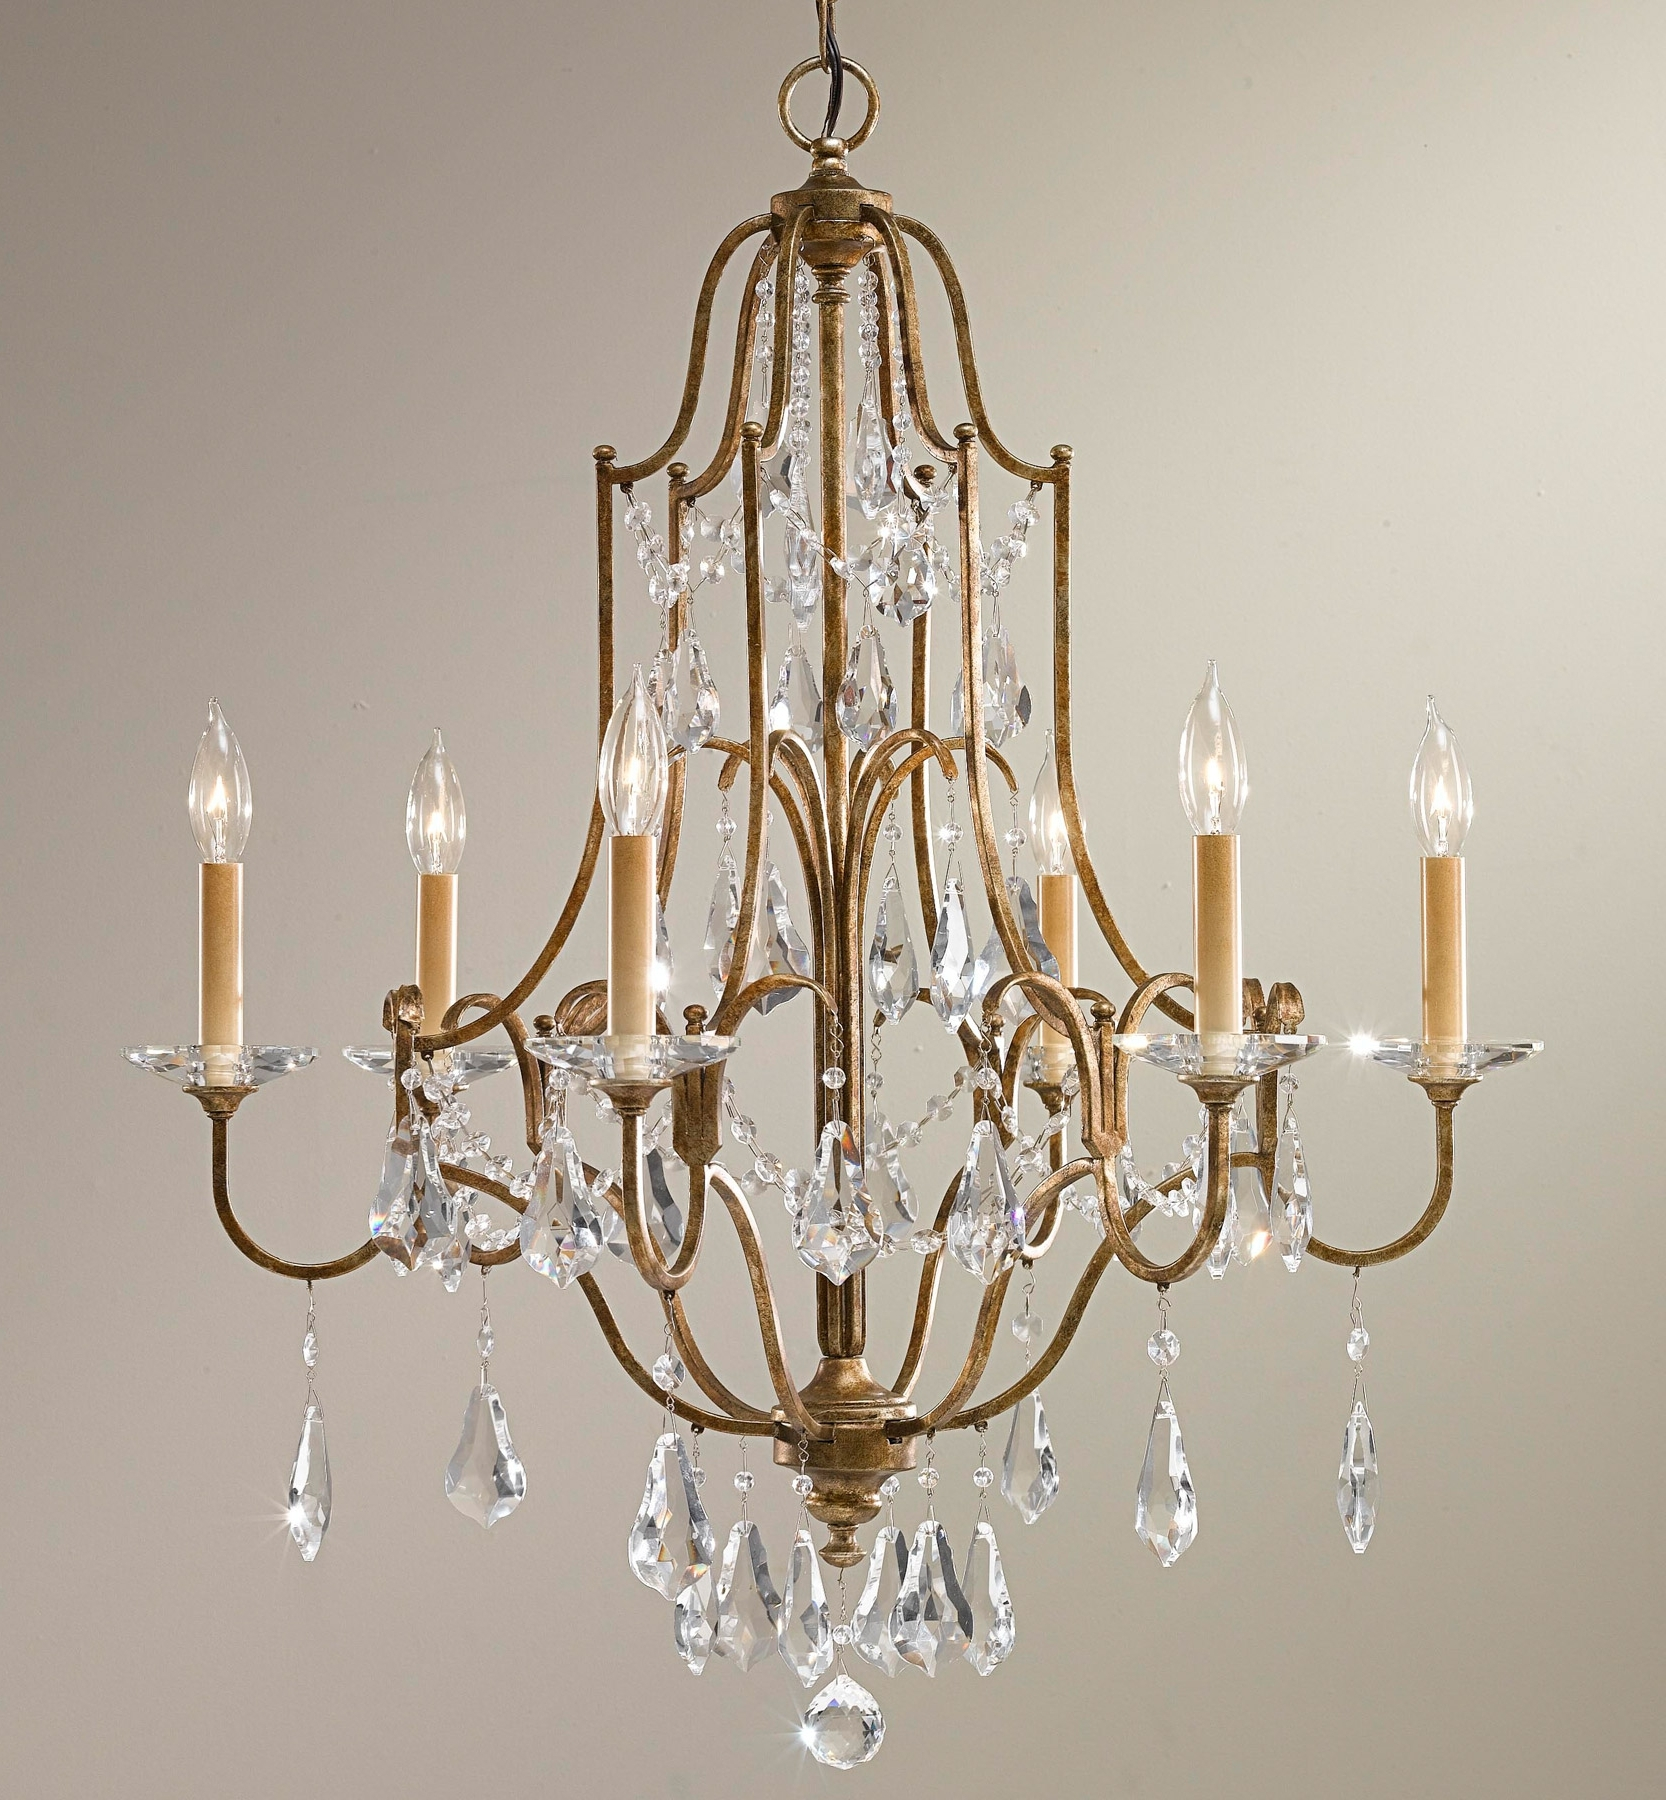 Latest Feiss F2478/6obz Crystal Valentina Six Light Chandelier For Feiss Chandeliers (View 14 of 20)